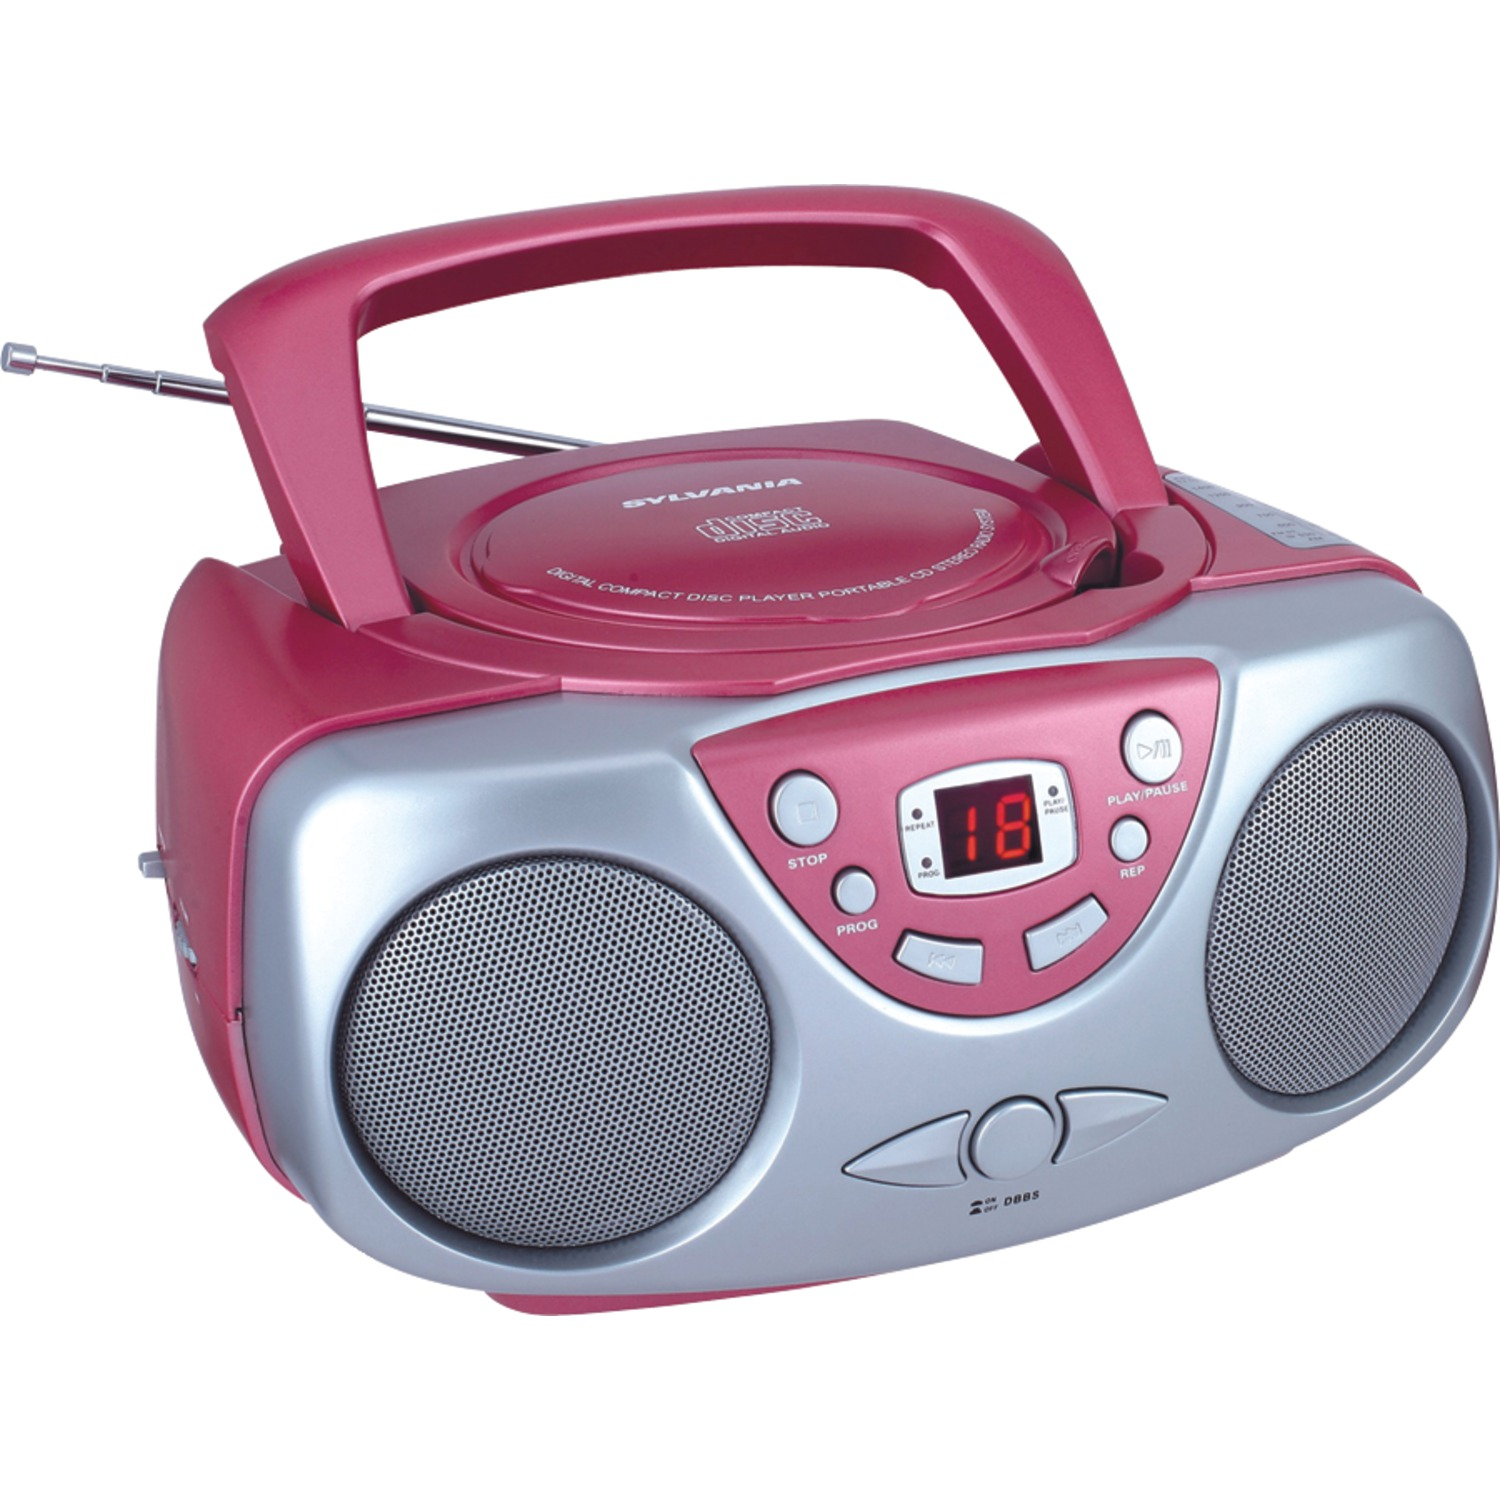 Portable CD Player Stereo Radio AM FM Boombox Carrying Handle Boom Box Aux Input